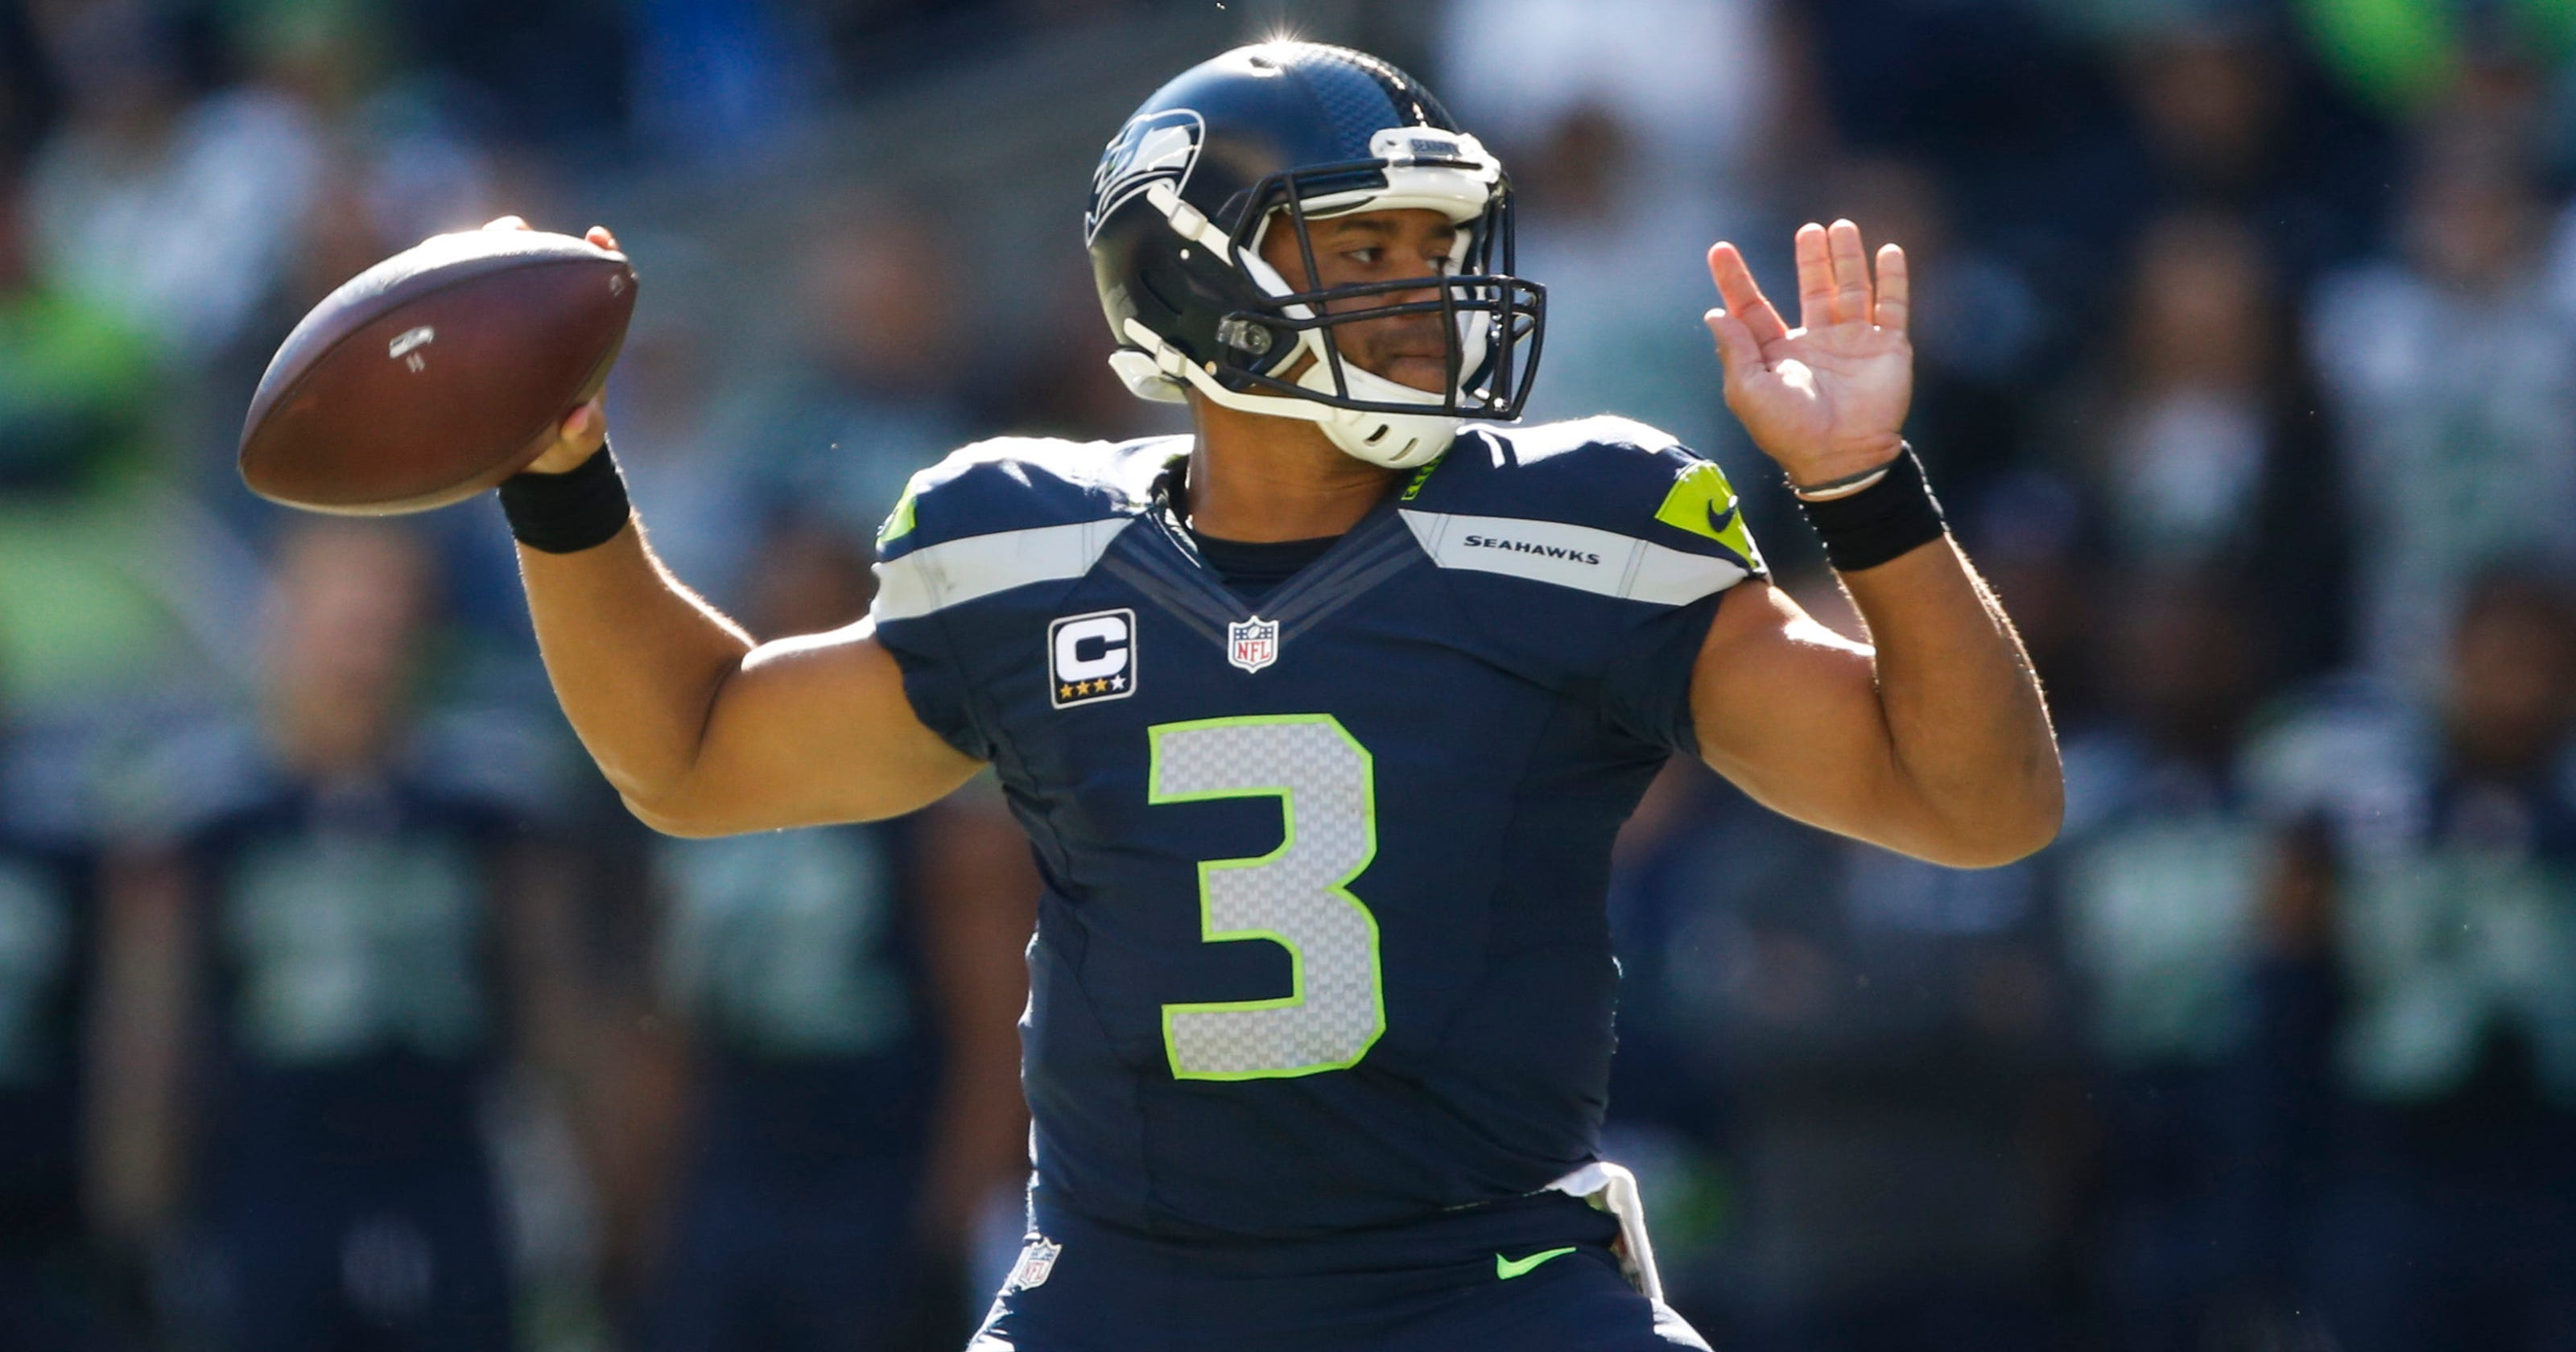 f9ce47be Russell Wilson's Seahawks jersey the hottest seller among NFL players